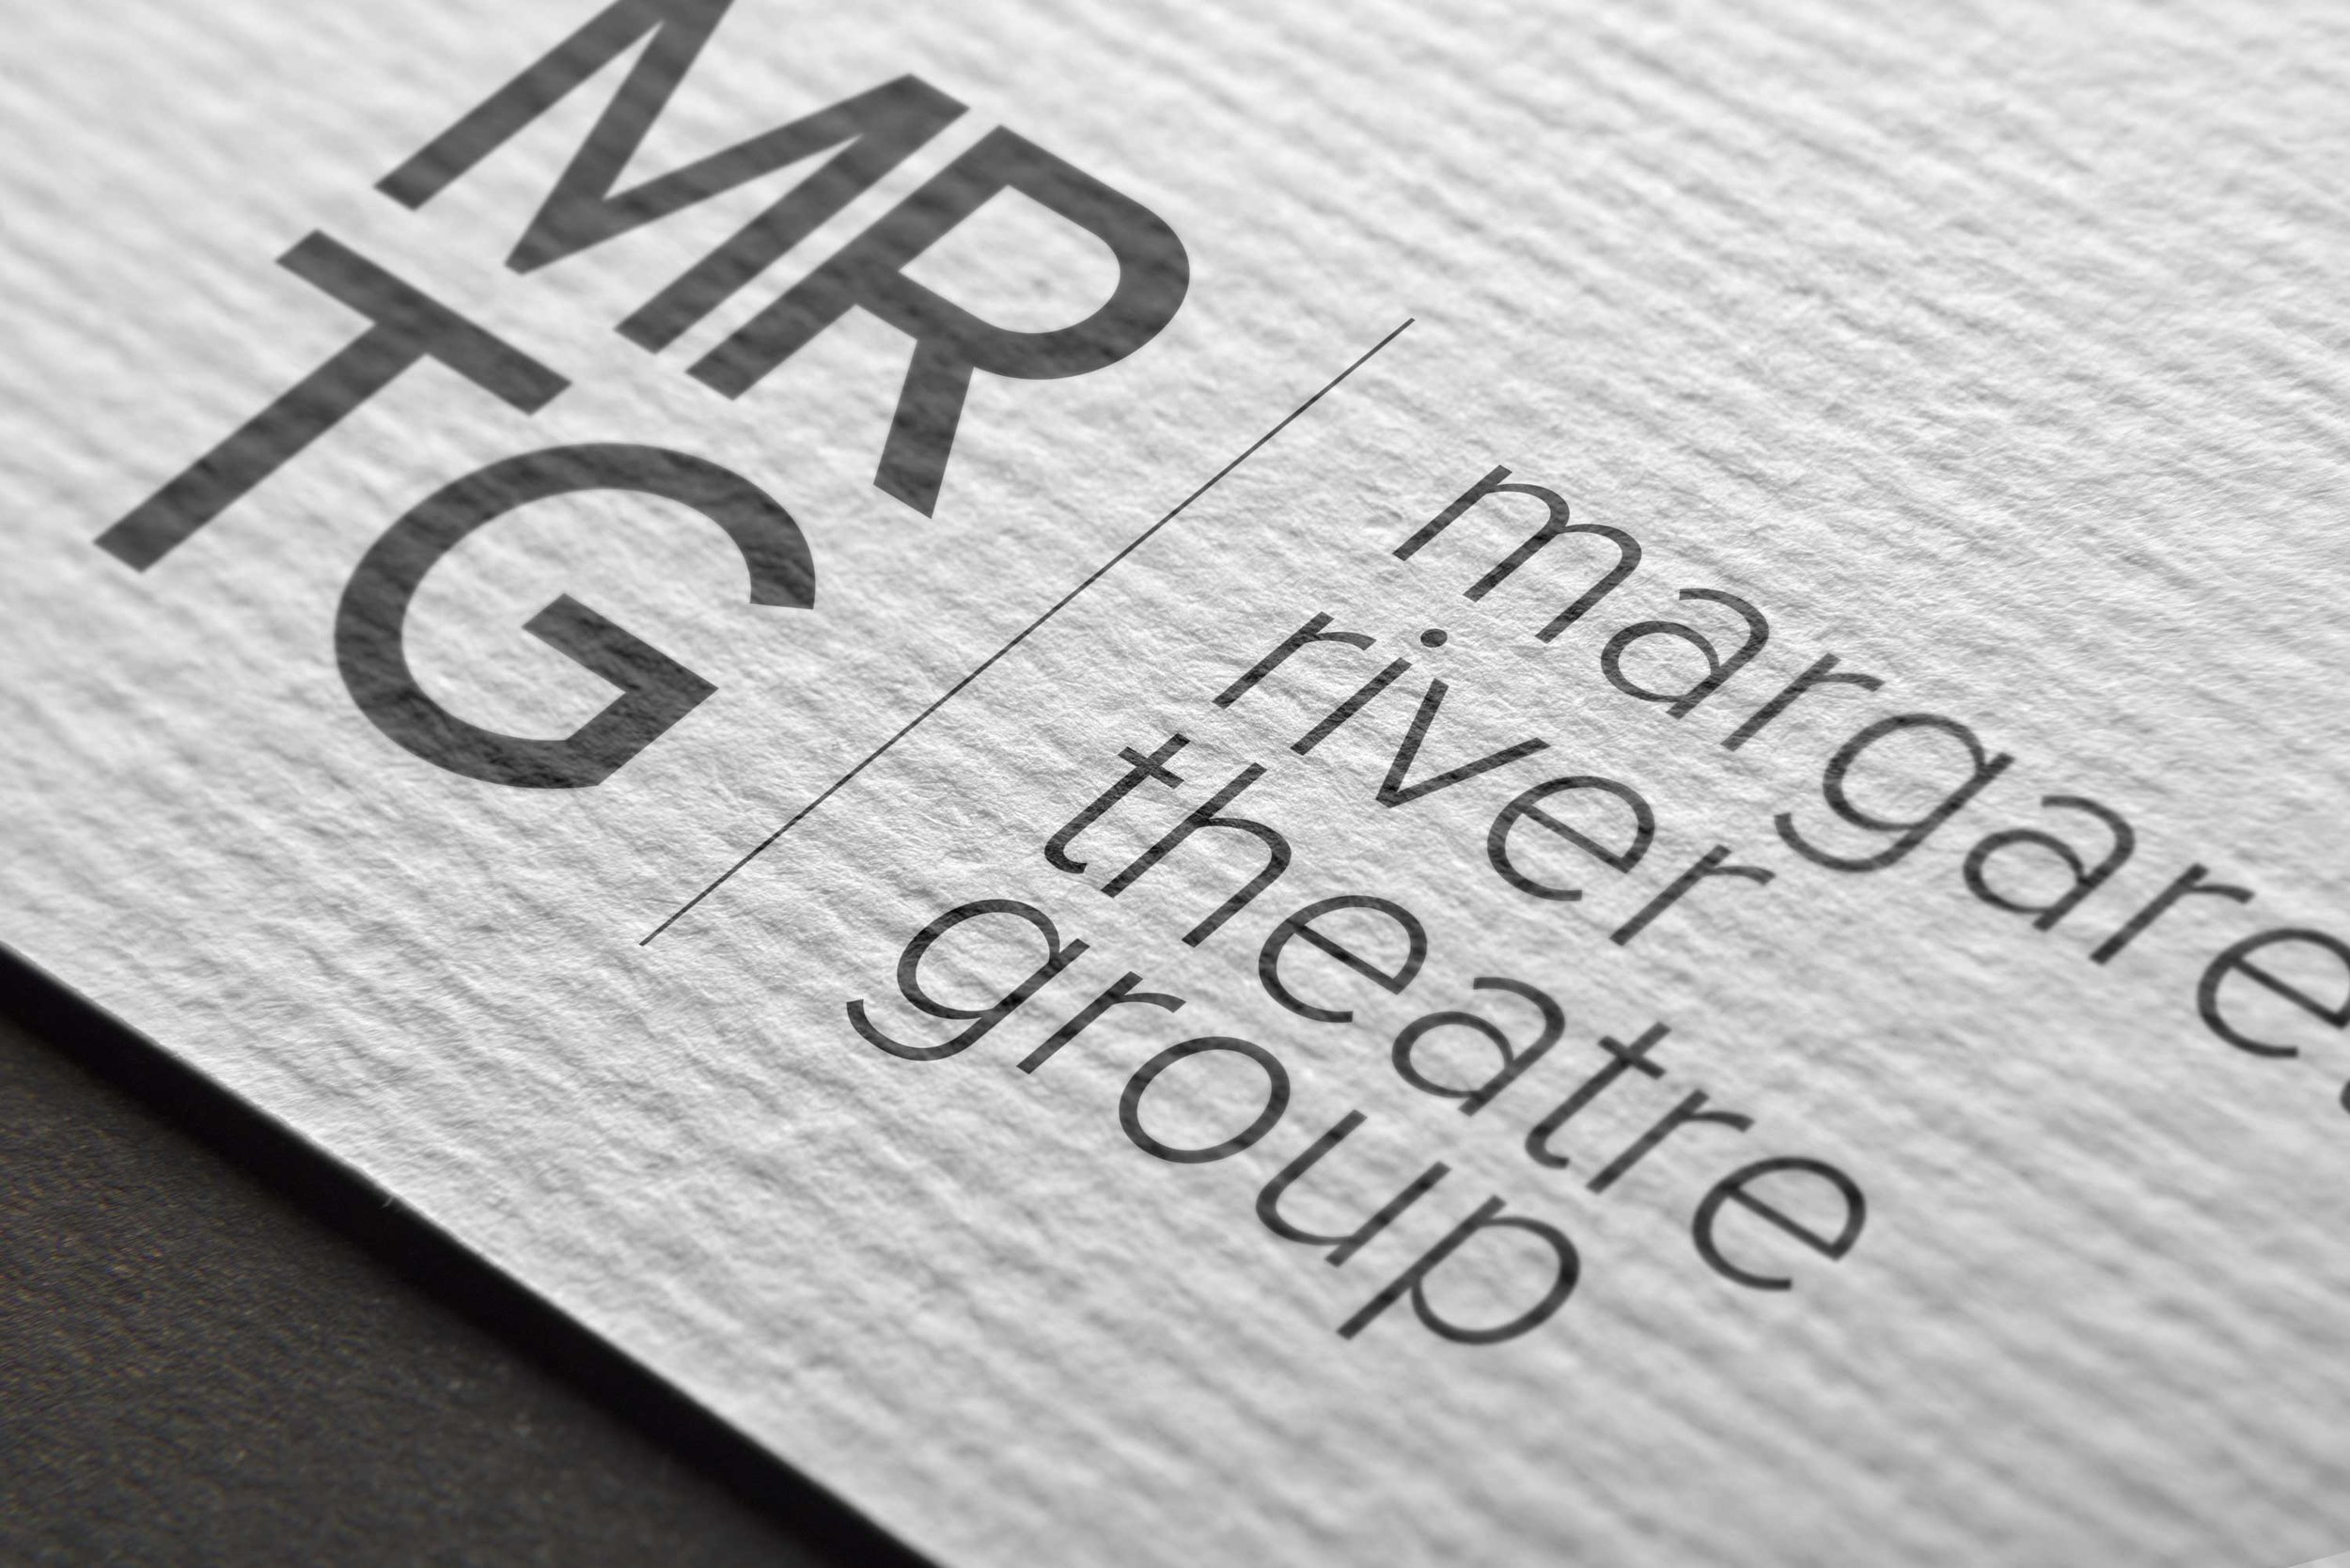 "Margaret River Theatre Group - ""Jeremy assisted the Margaret River Theatre Group with redesigning their logo. He was easy to talk to, professional and thorough. He is very customer focused and is clearly passionate about what he does. We would definitely use his services again."" - Rebecca Simmonds"